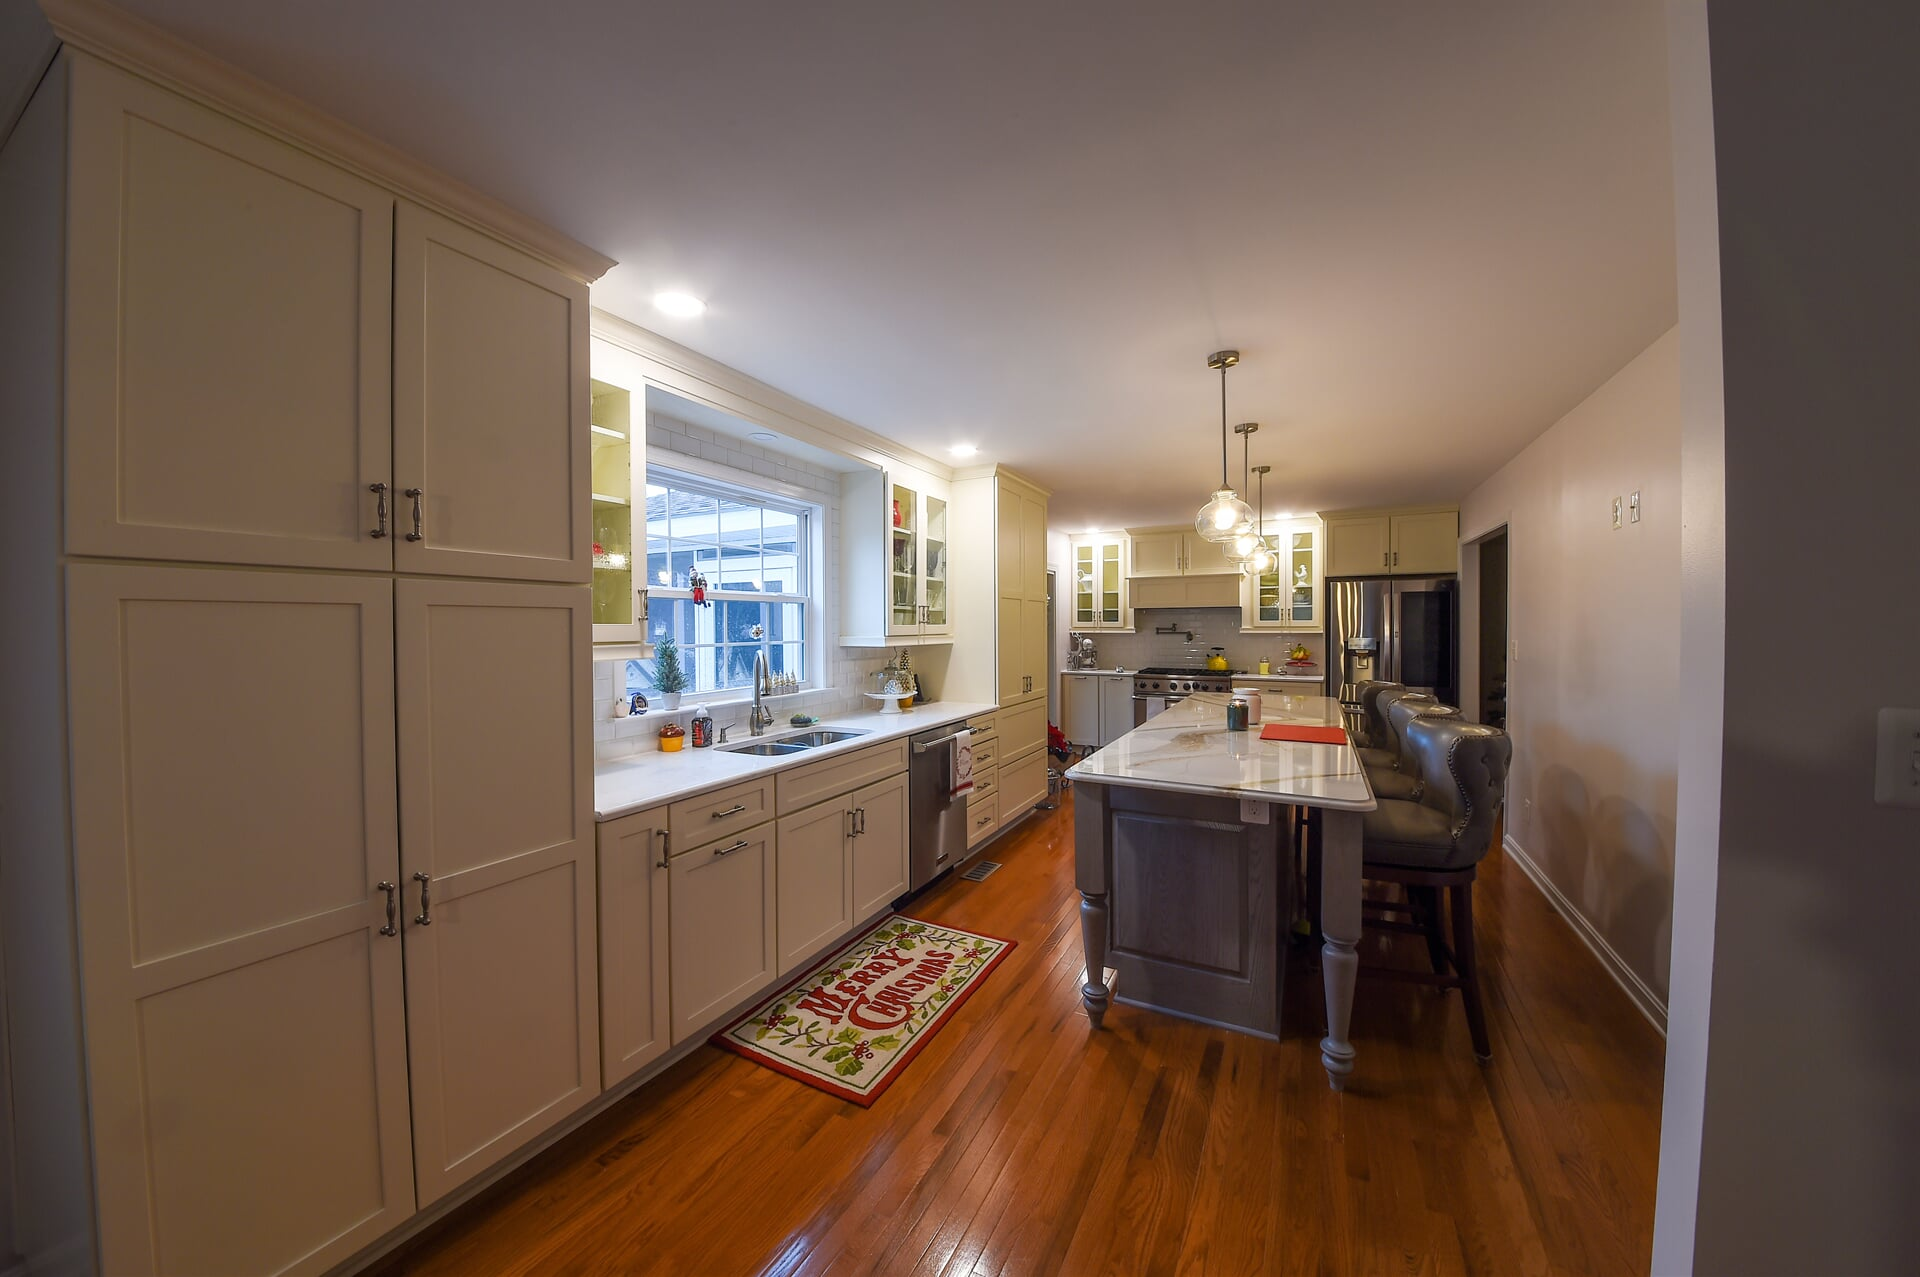 Kitchen remodeling in Waldorf, MD by Southern Maryland Kitchen Bath Floors & Design